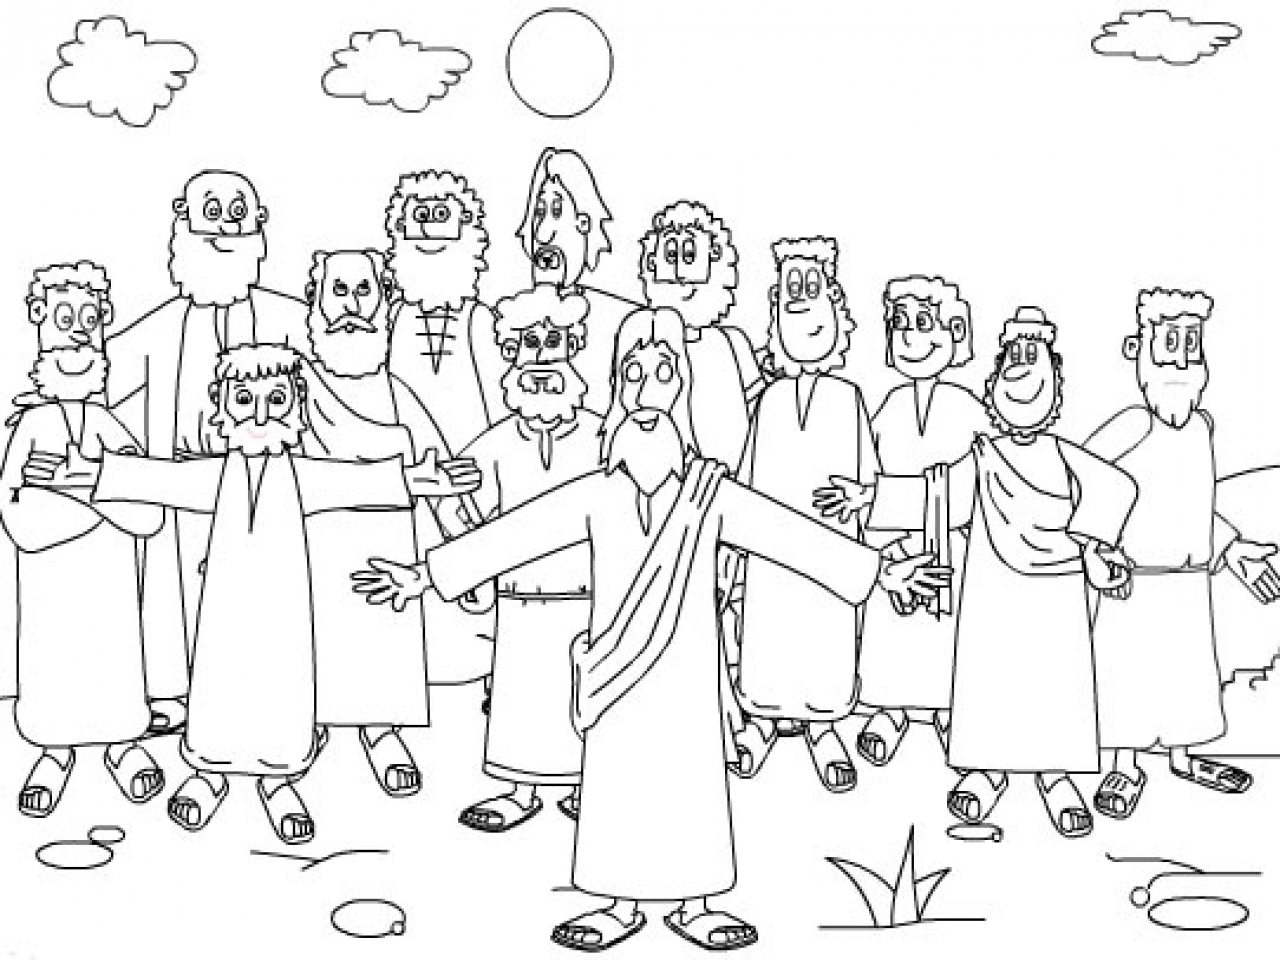 jesus and disciples coloring page jesus 12 disciples coloring page sketch coloring page page jesus disciples coloring and